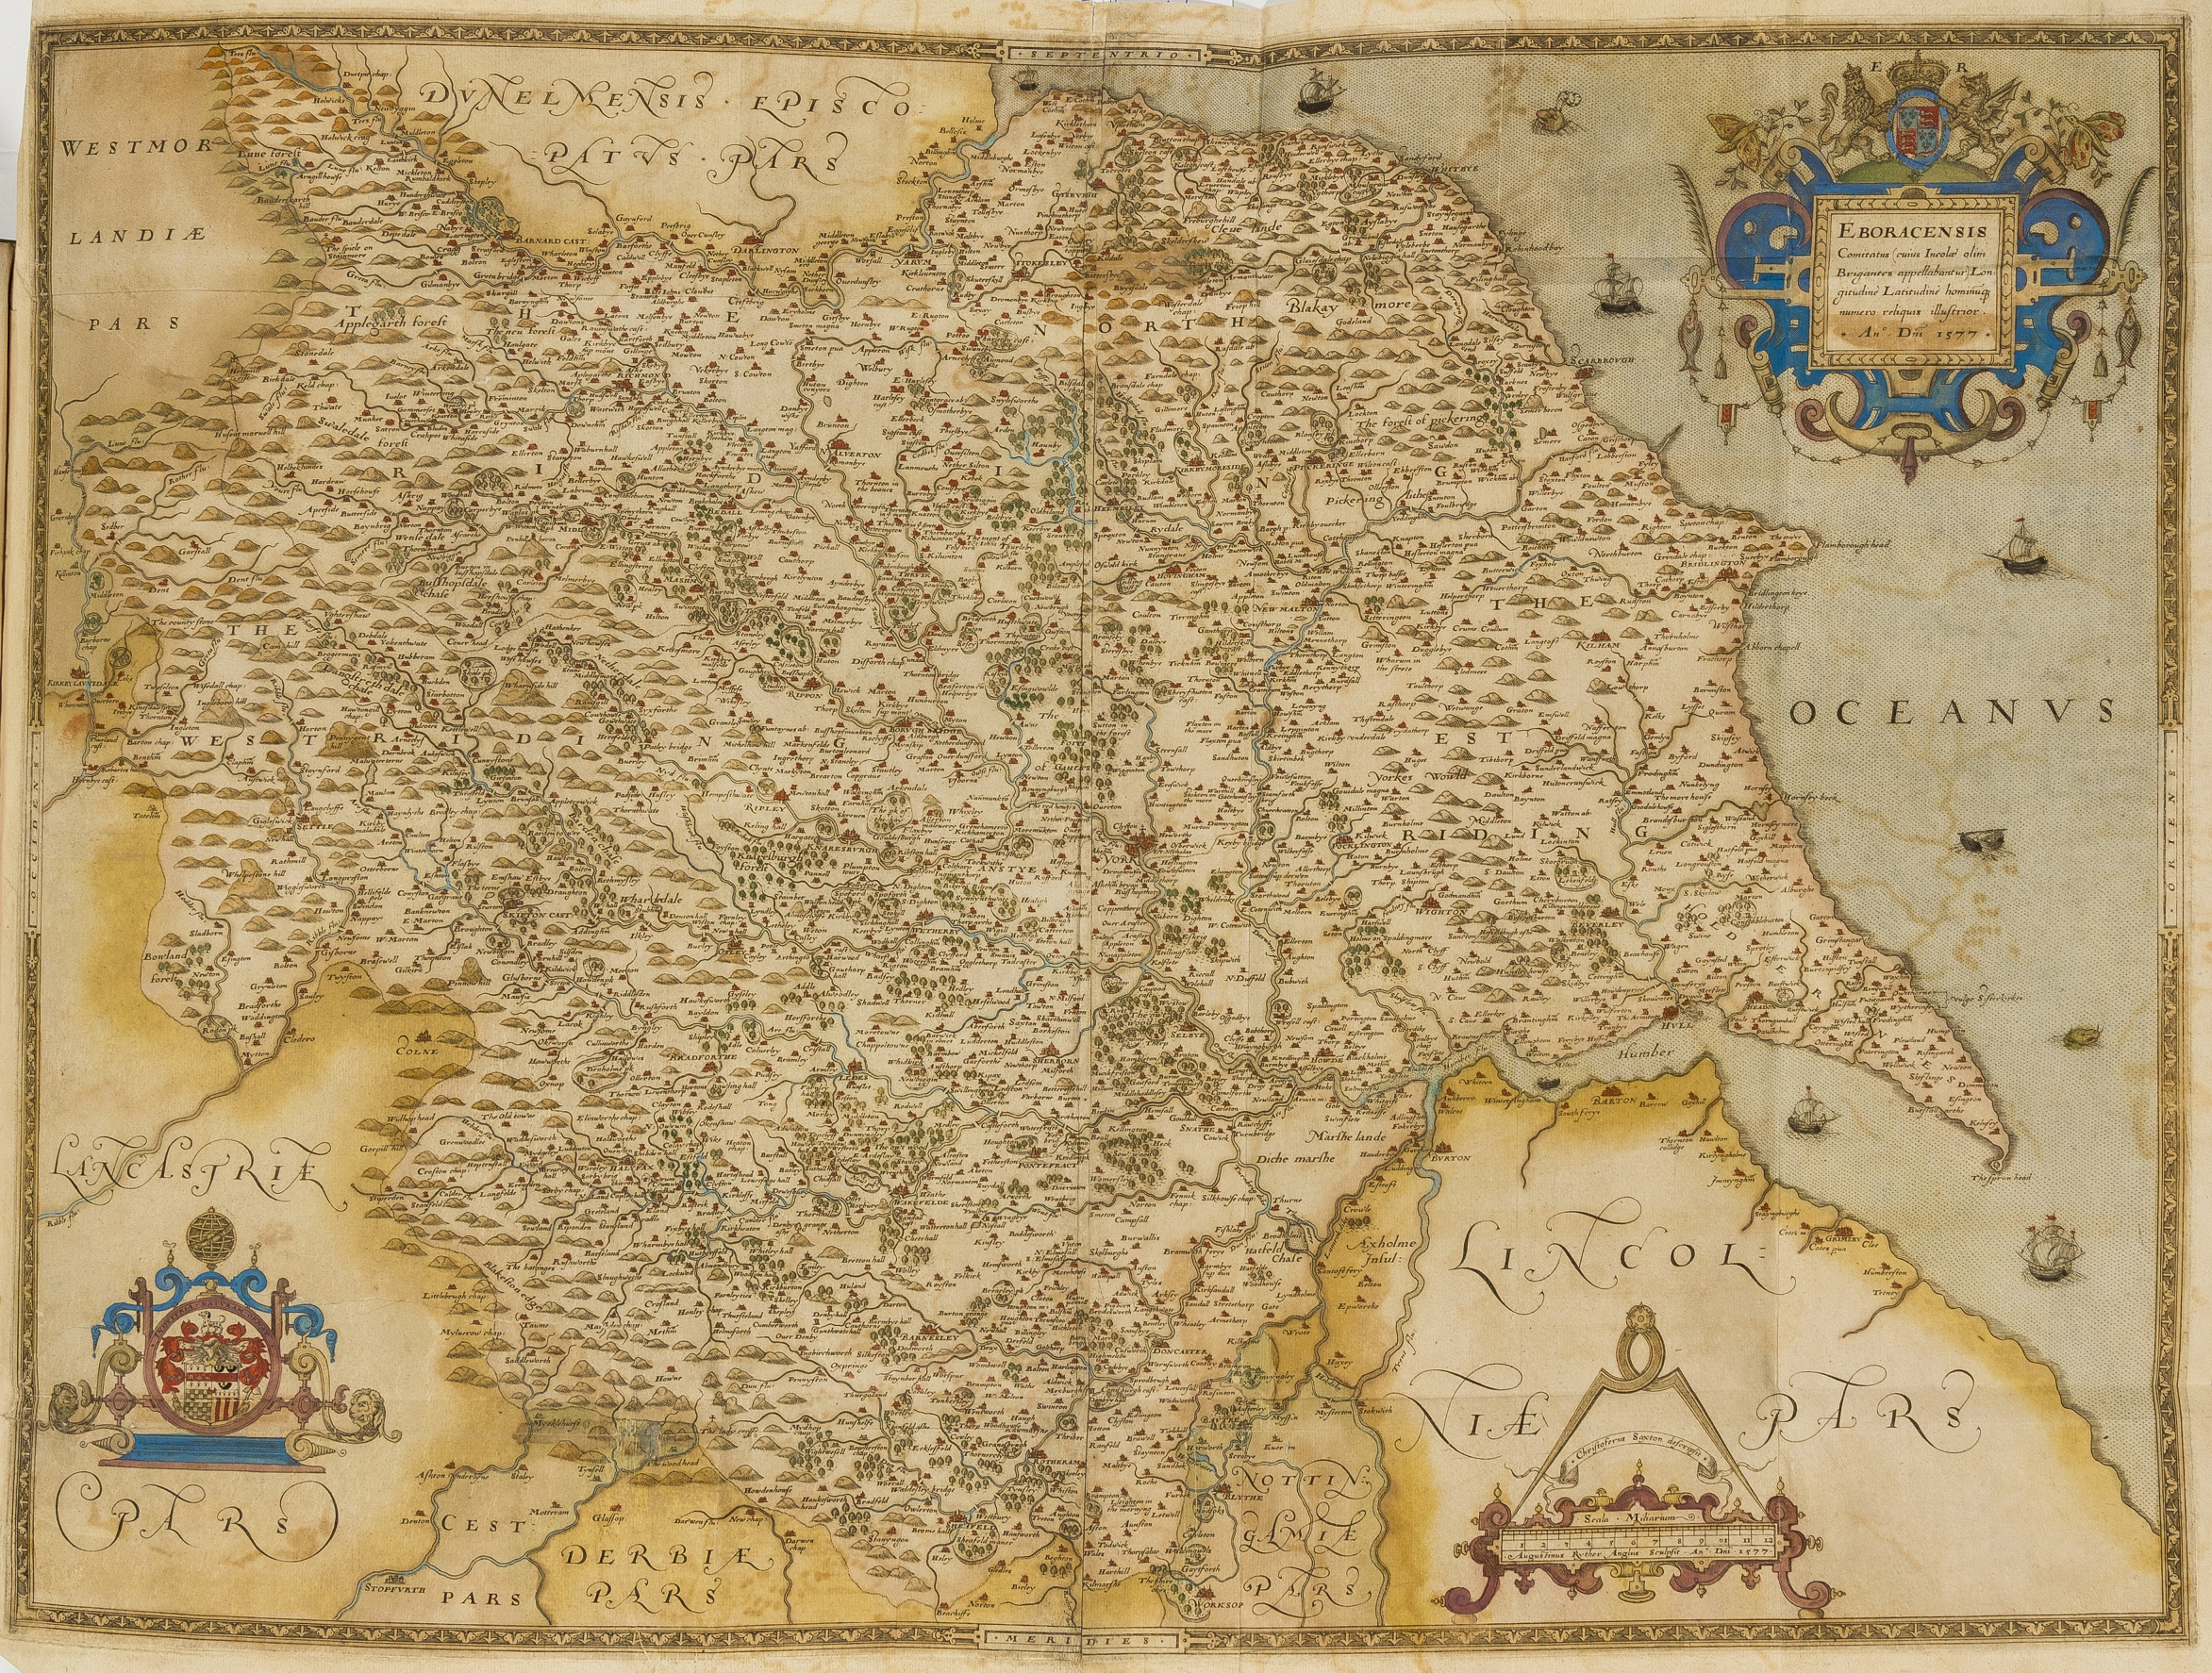 Lot 37 - Atlases.- Saxton (Christopher) [An Atlas of England and Wales], first edition, 34 hand-coloured …